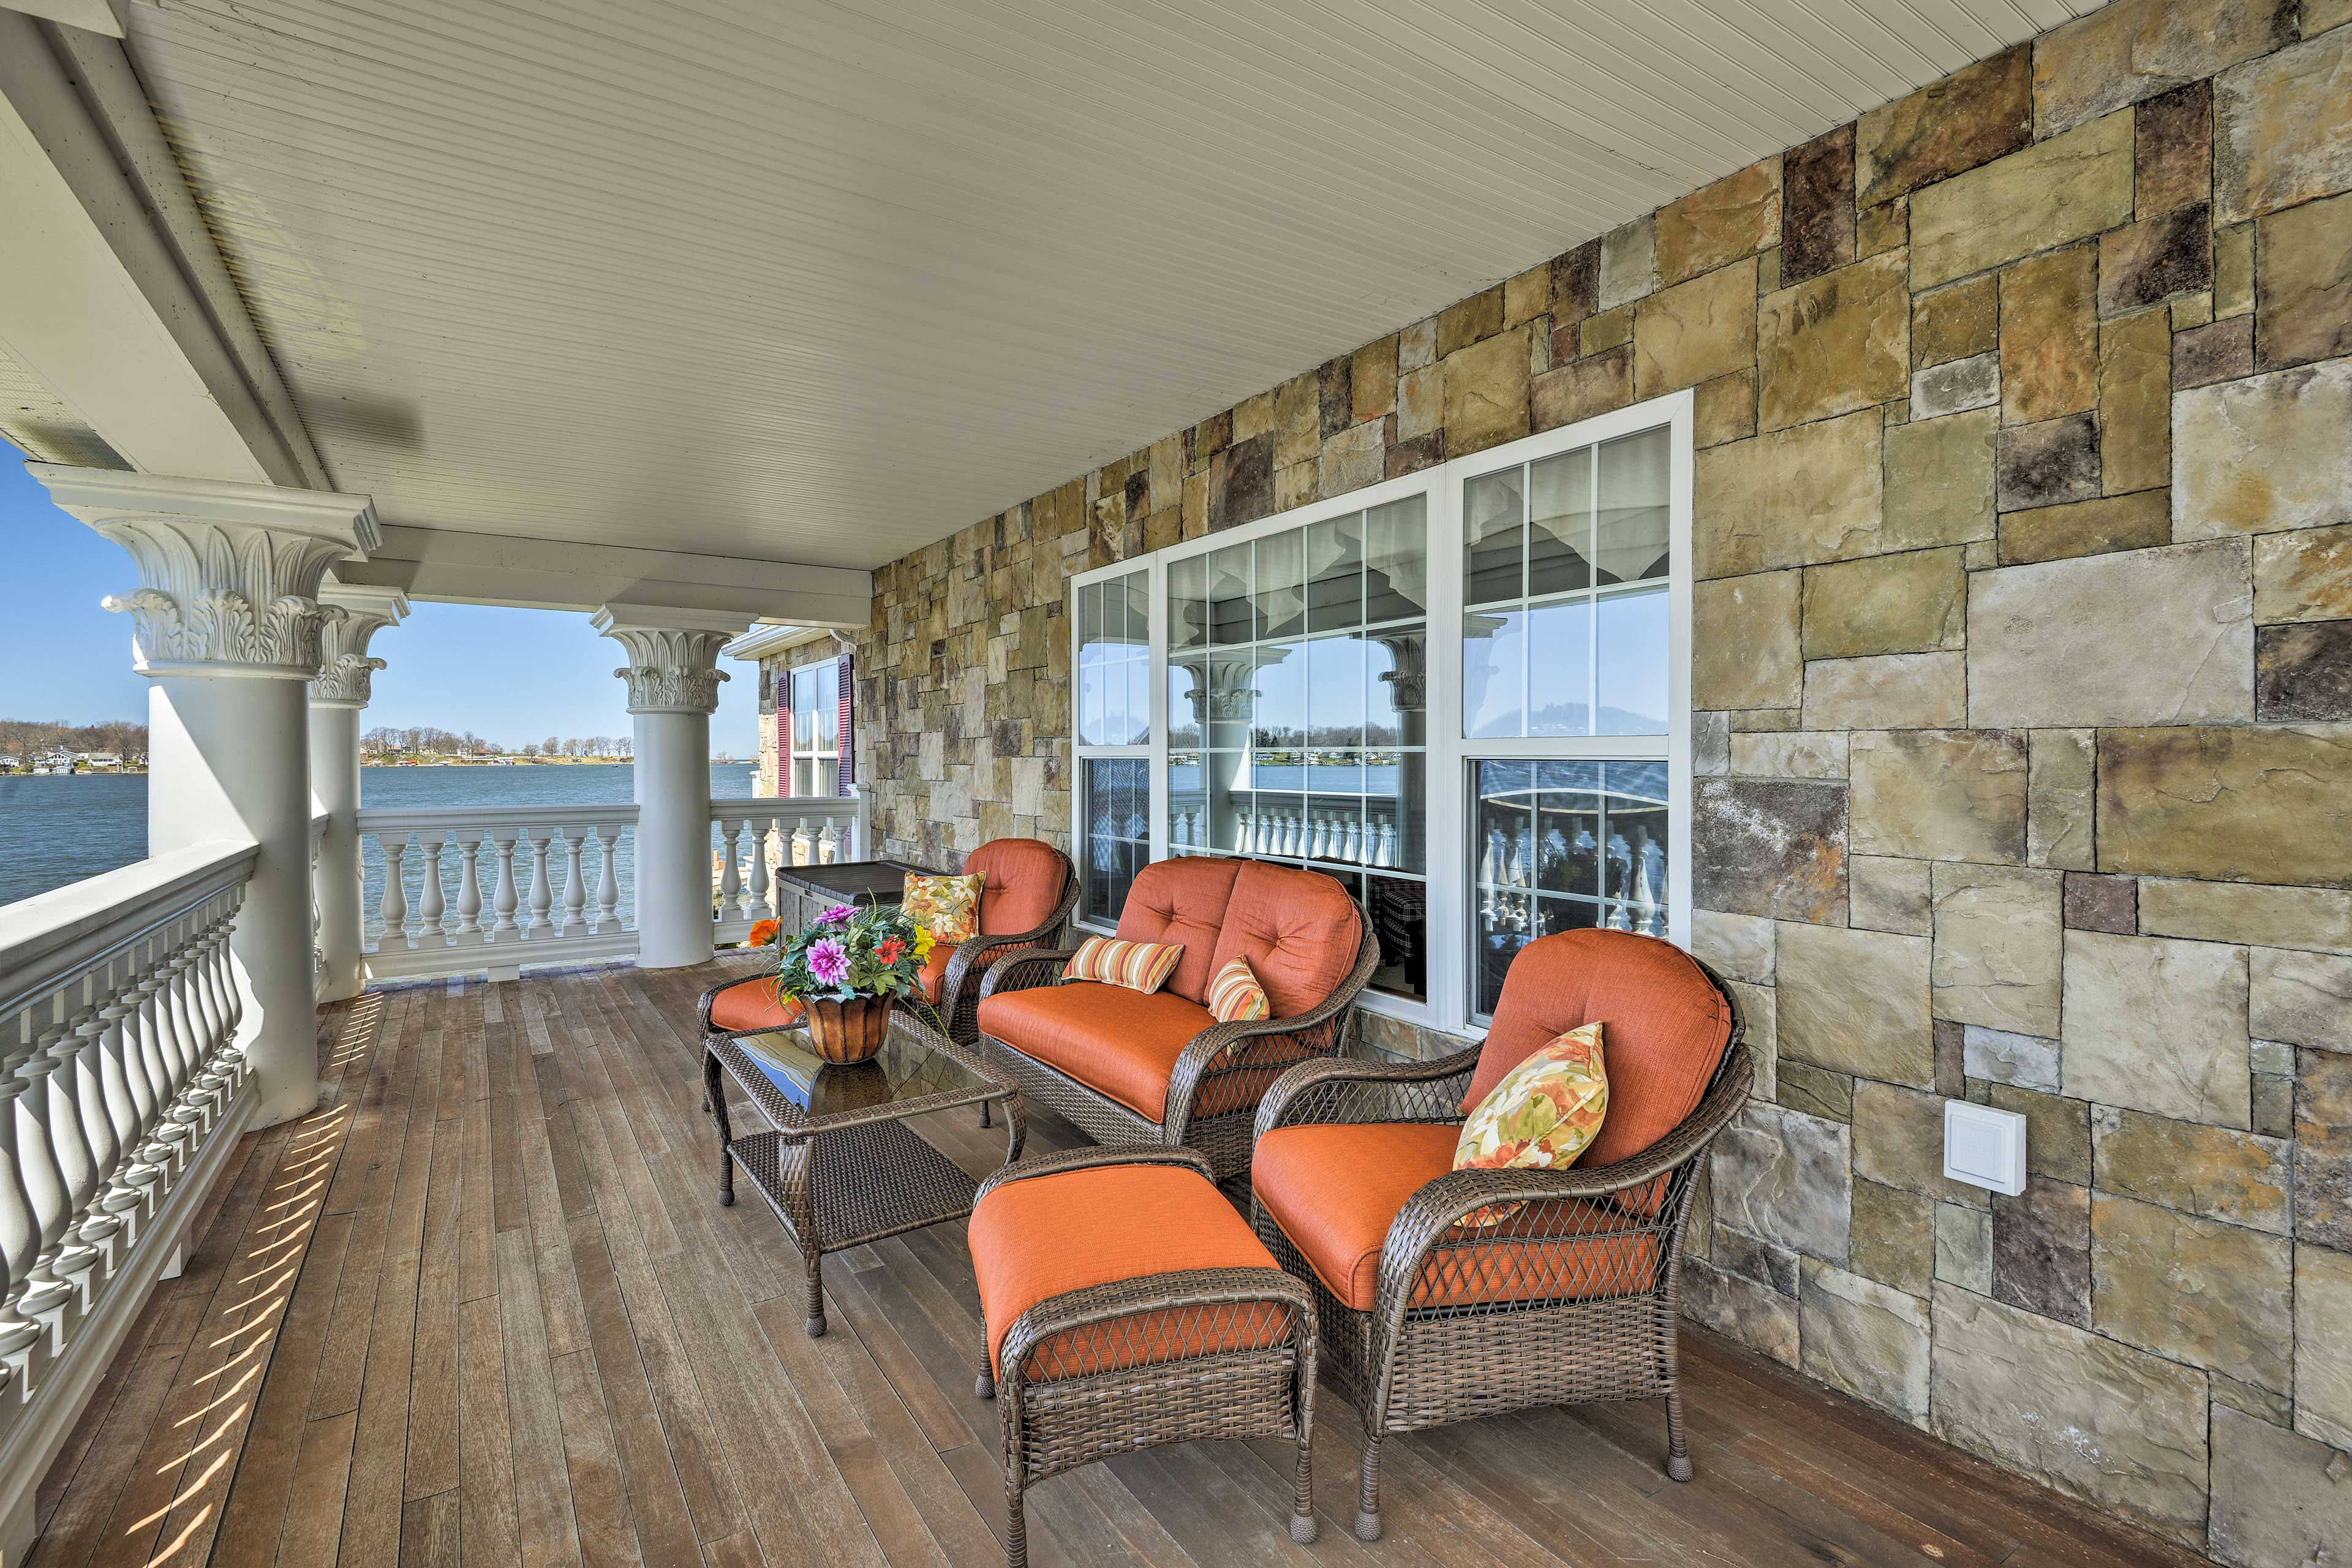 Make your favorite drink and grab a seat on the expansive deck.